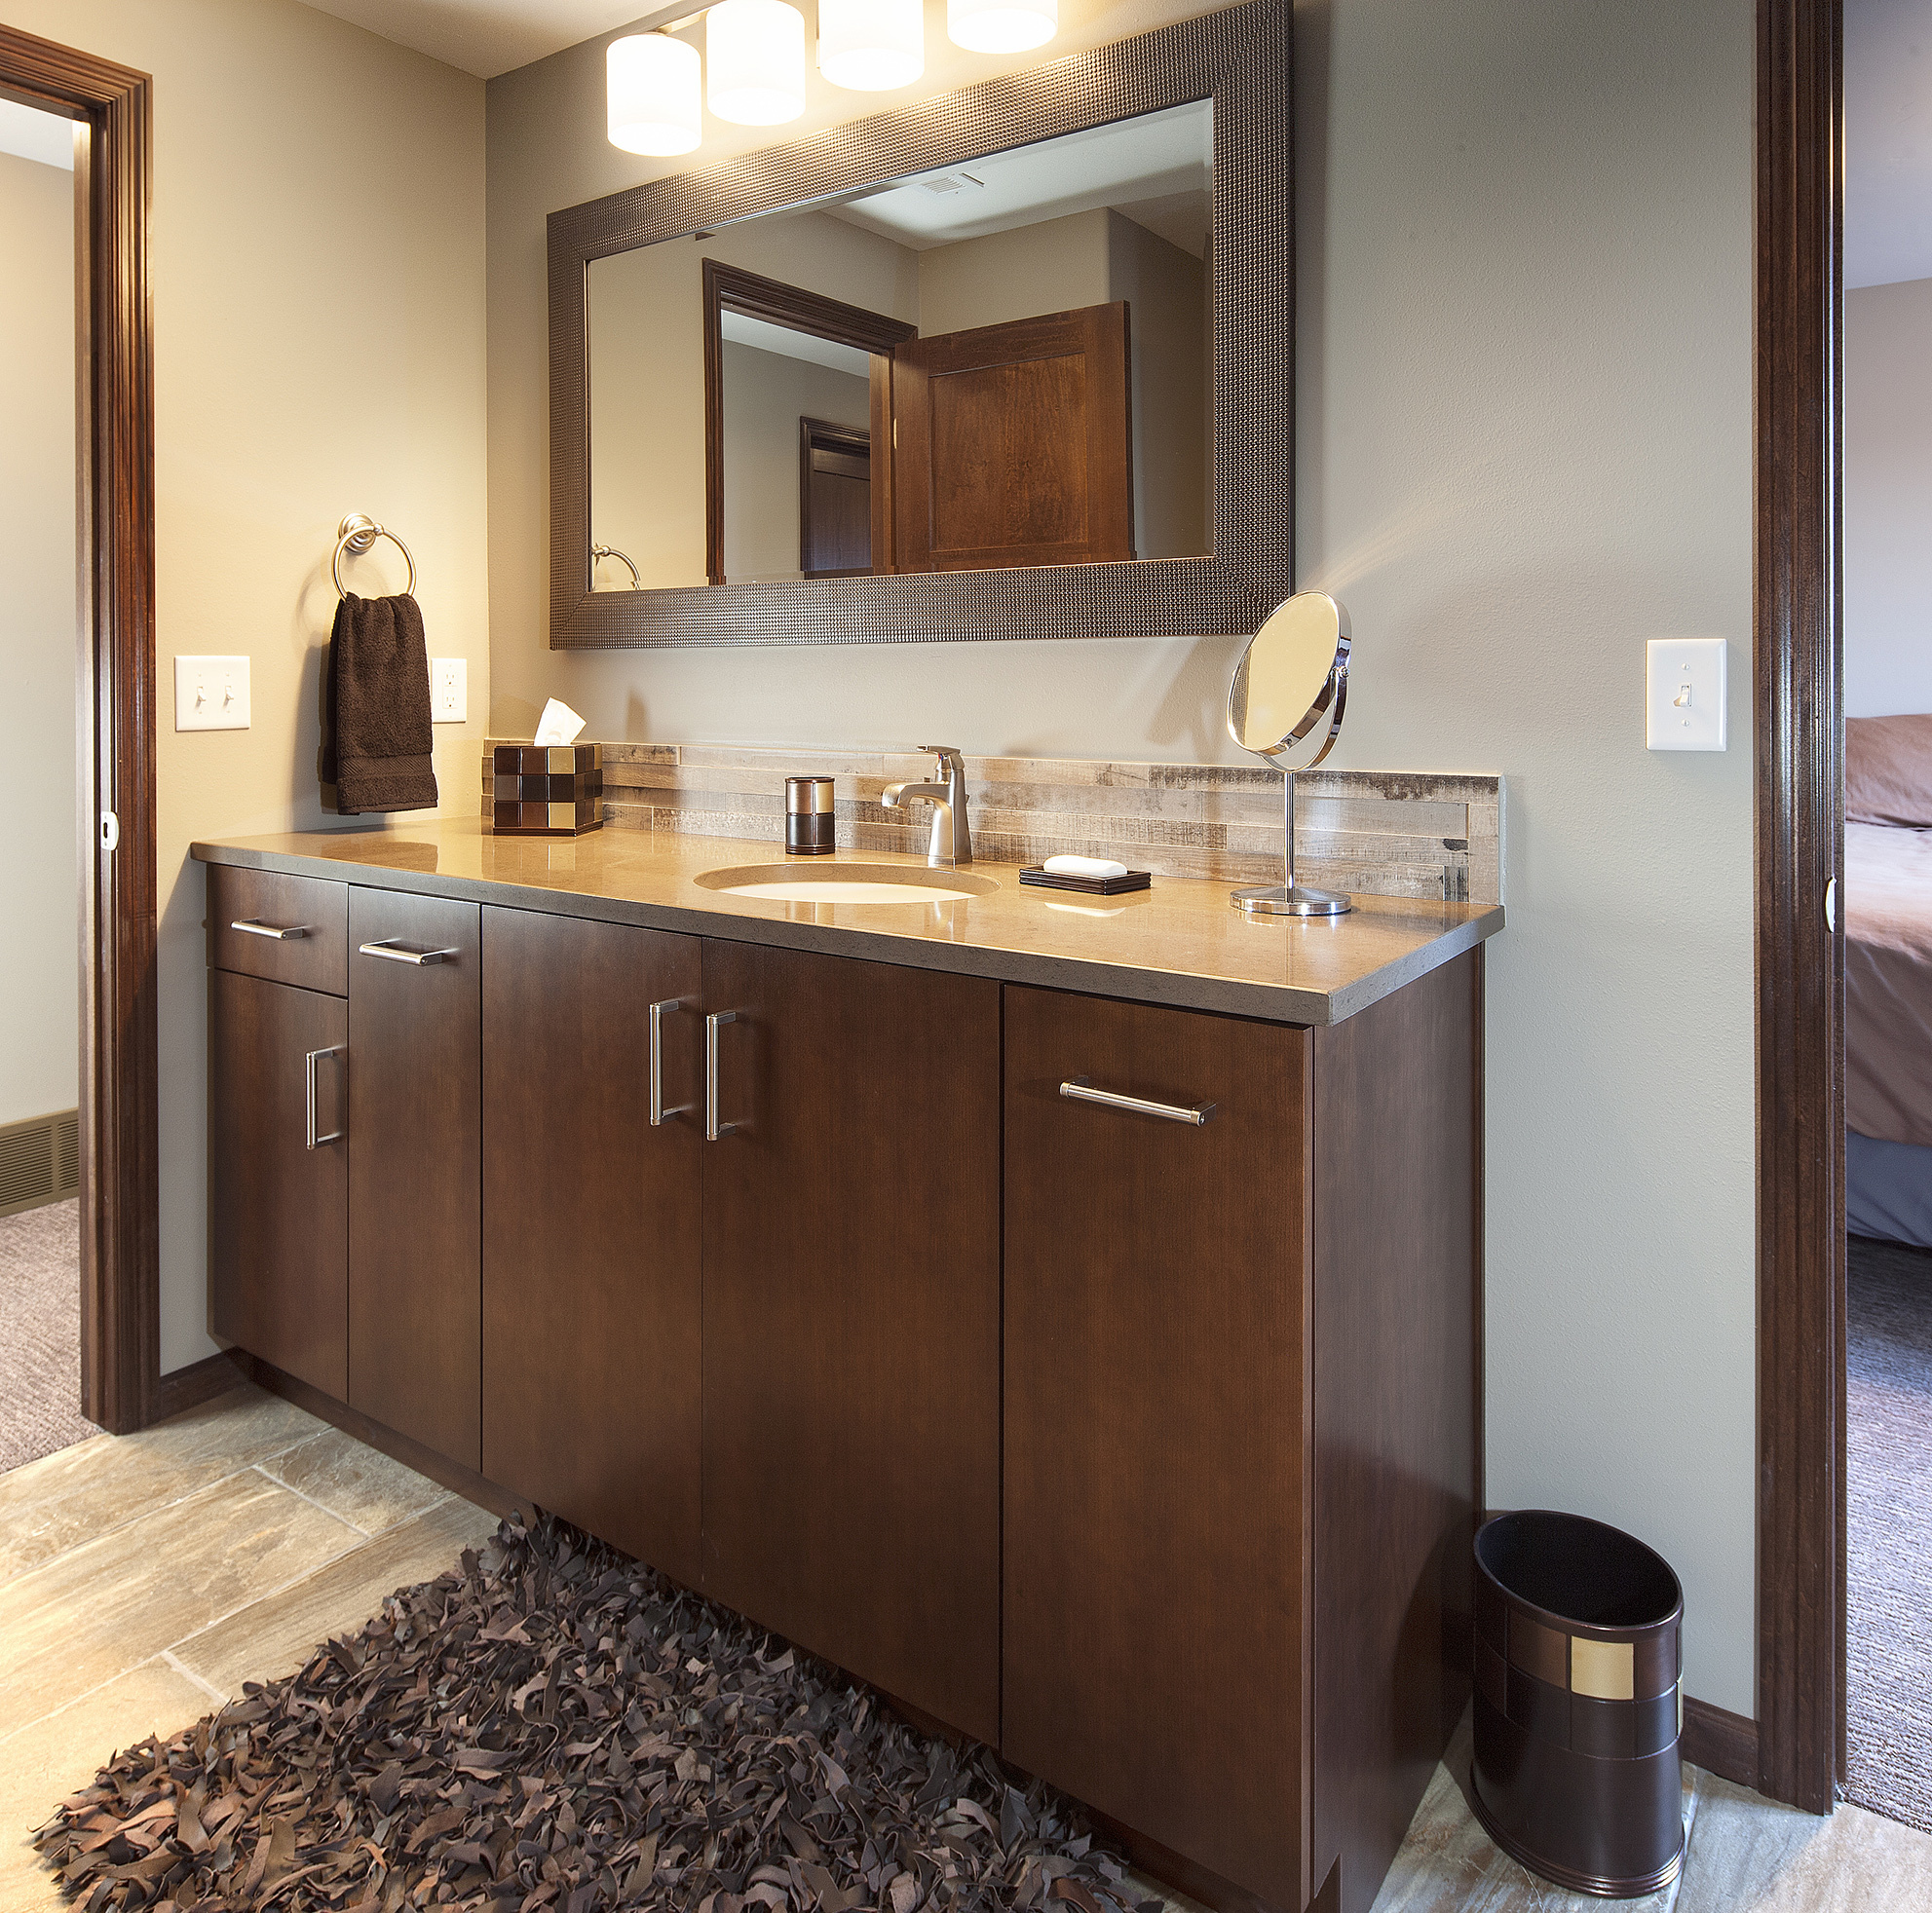 Stained Bathroom Cabinets in Coffee by ShowplaceEVO